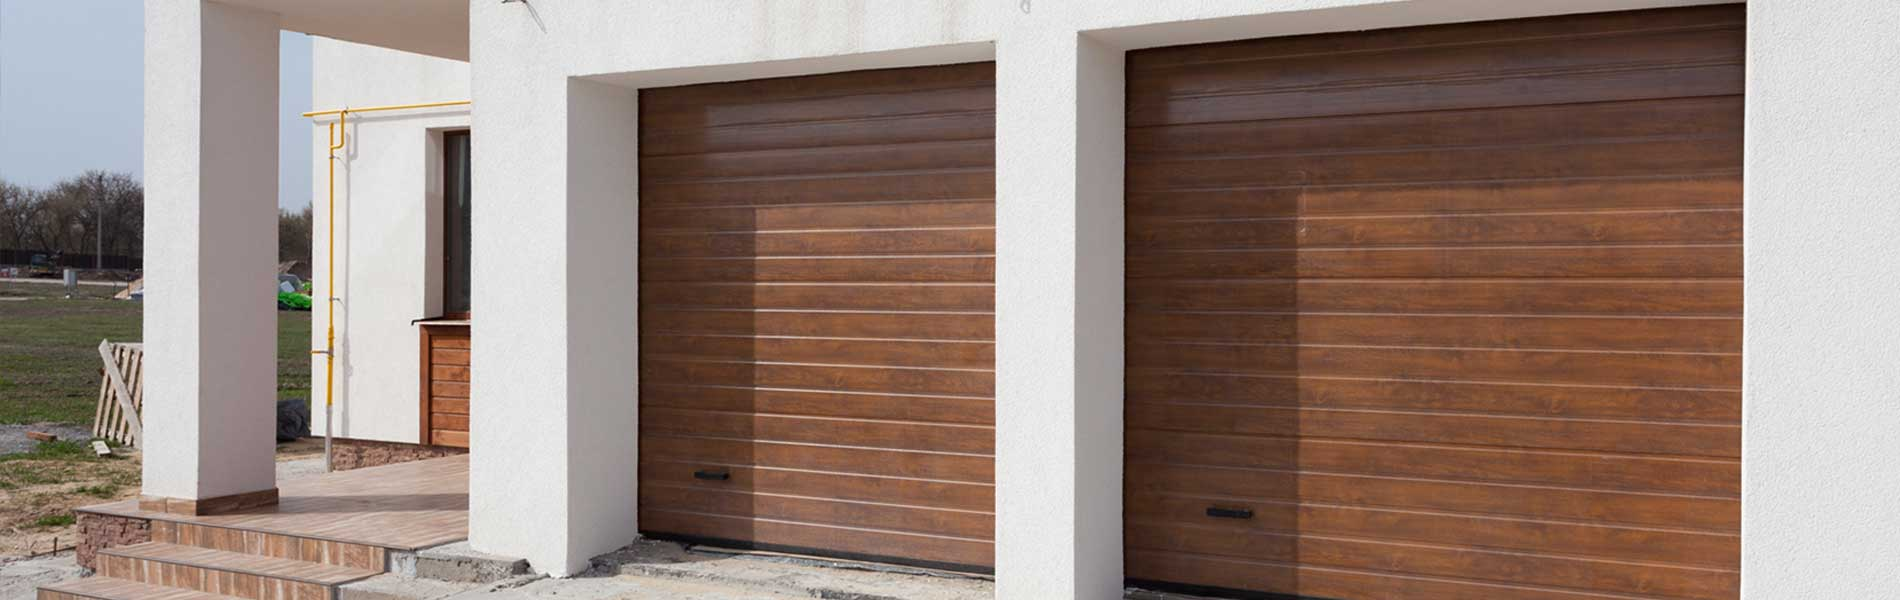 ... Elite Garage Door Service, Atlanta, GA 404 476 3546